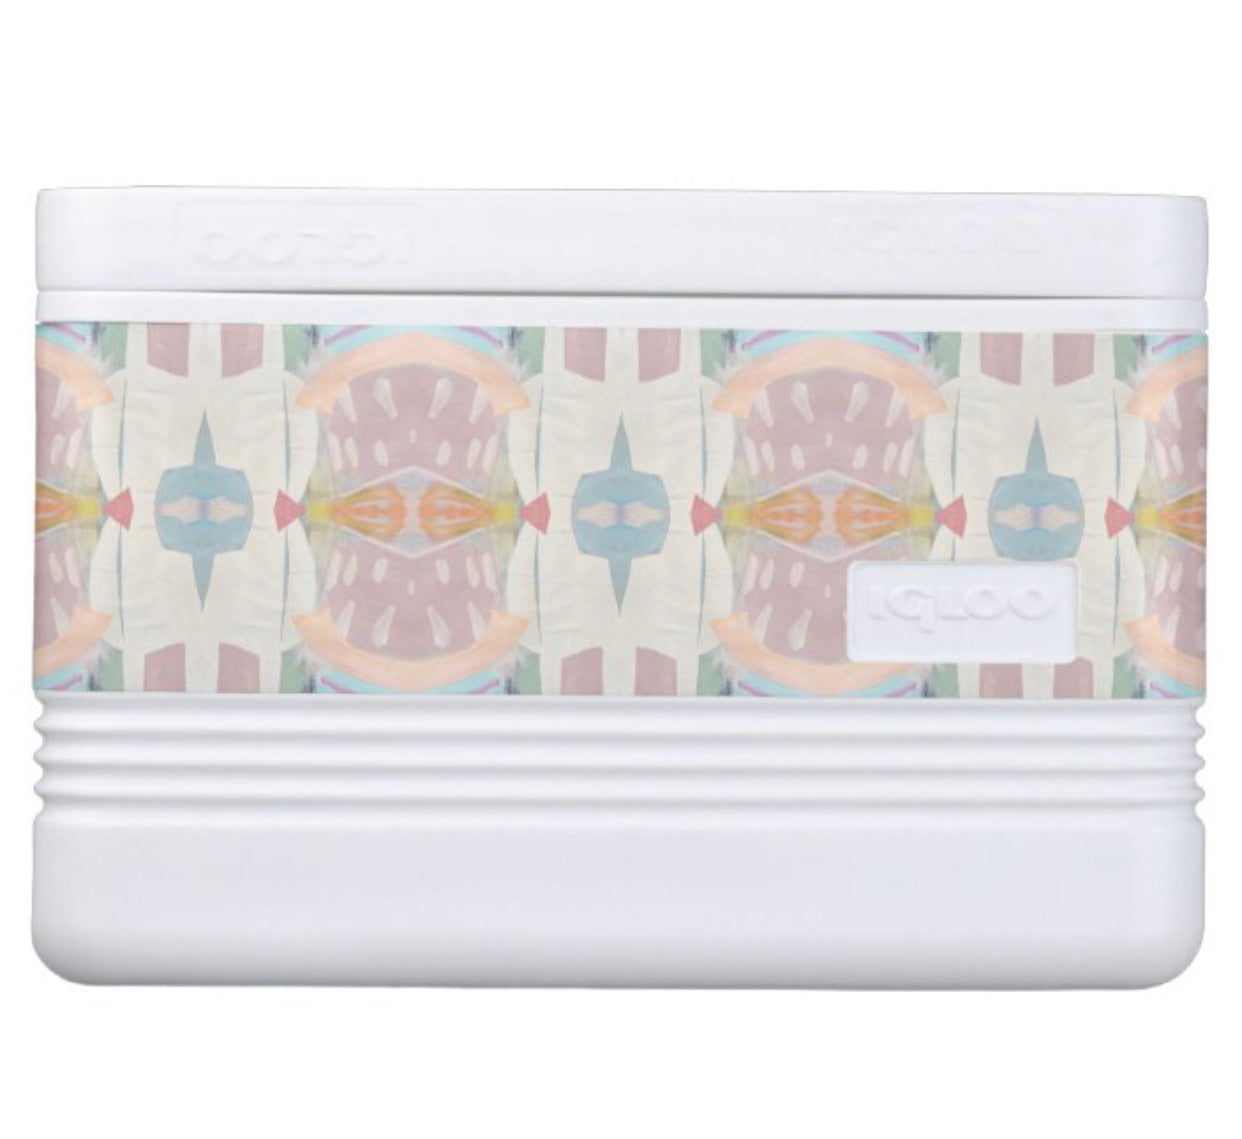 Jessie Igloo Cooler